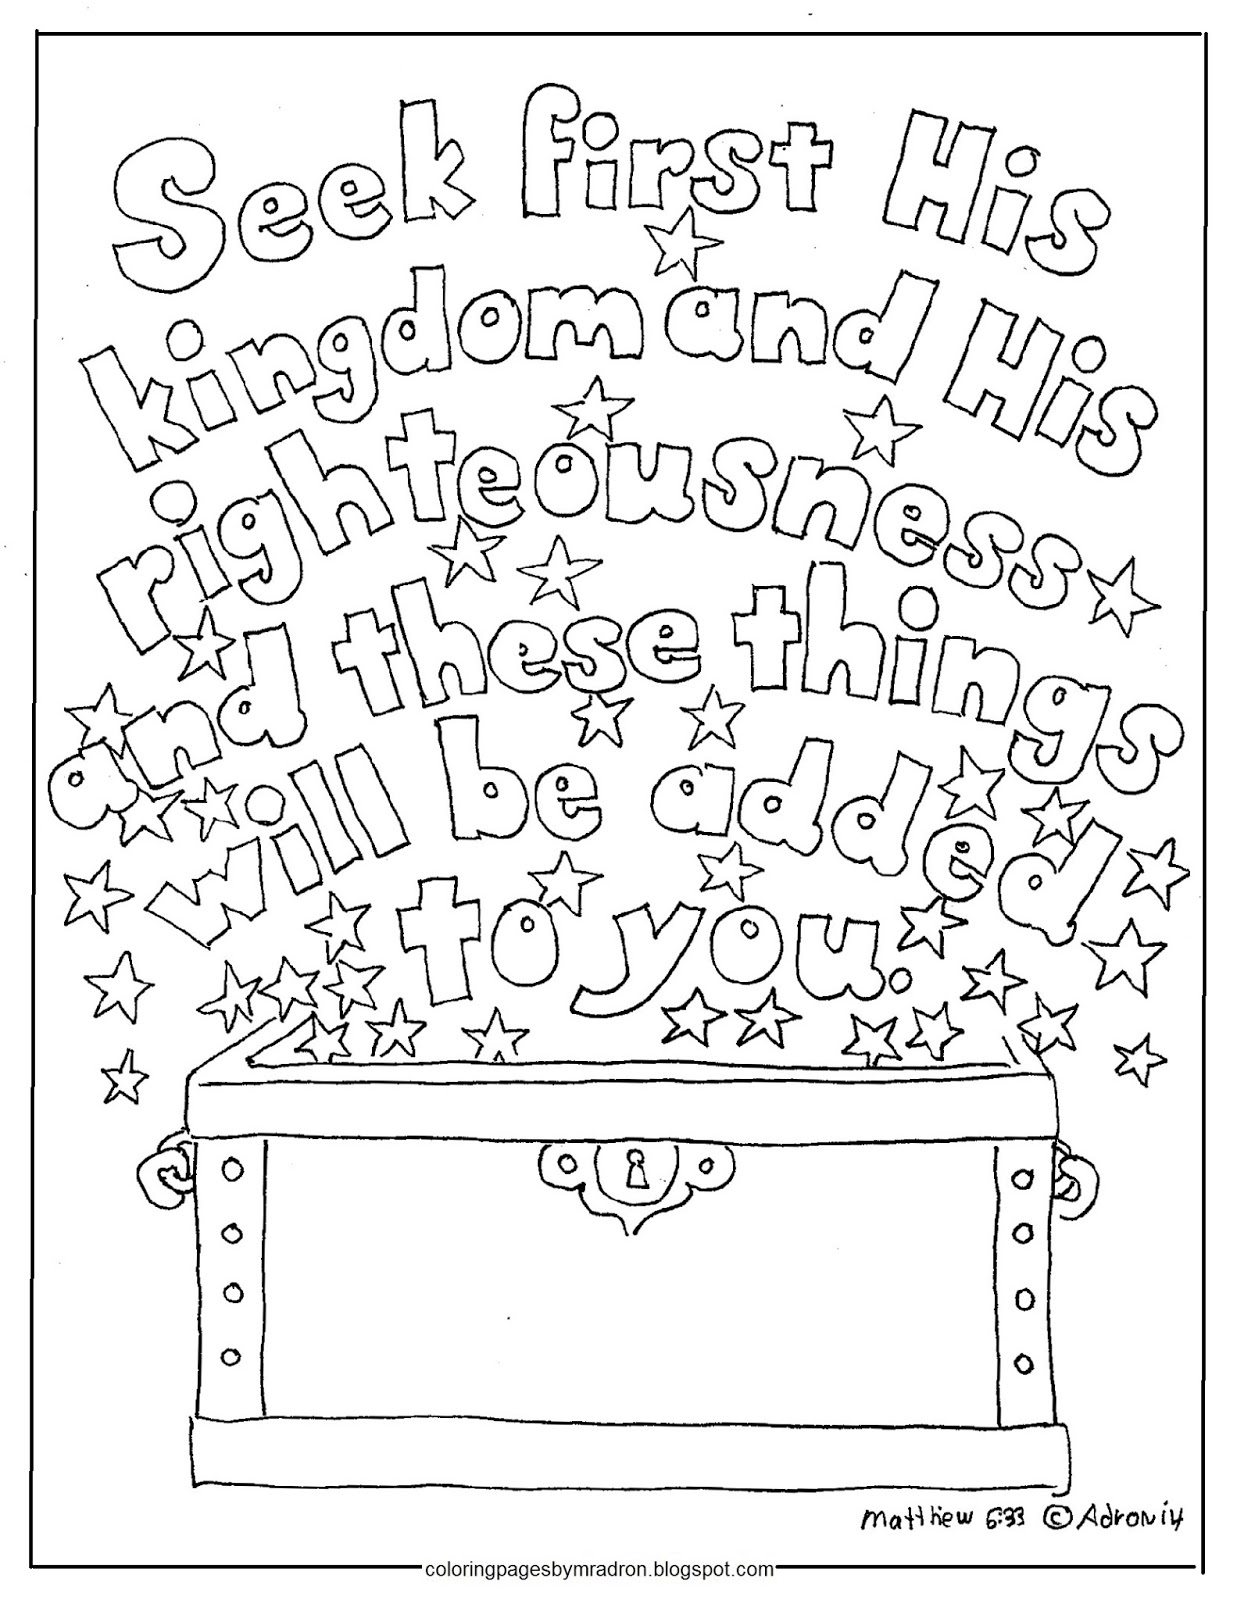 Coloring Pages for Kids by Mr. Adron: Seek First His